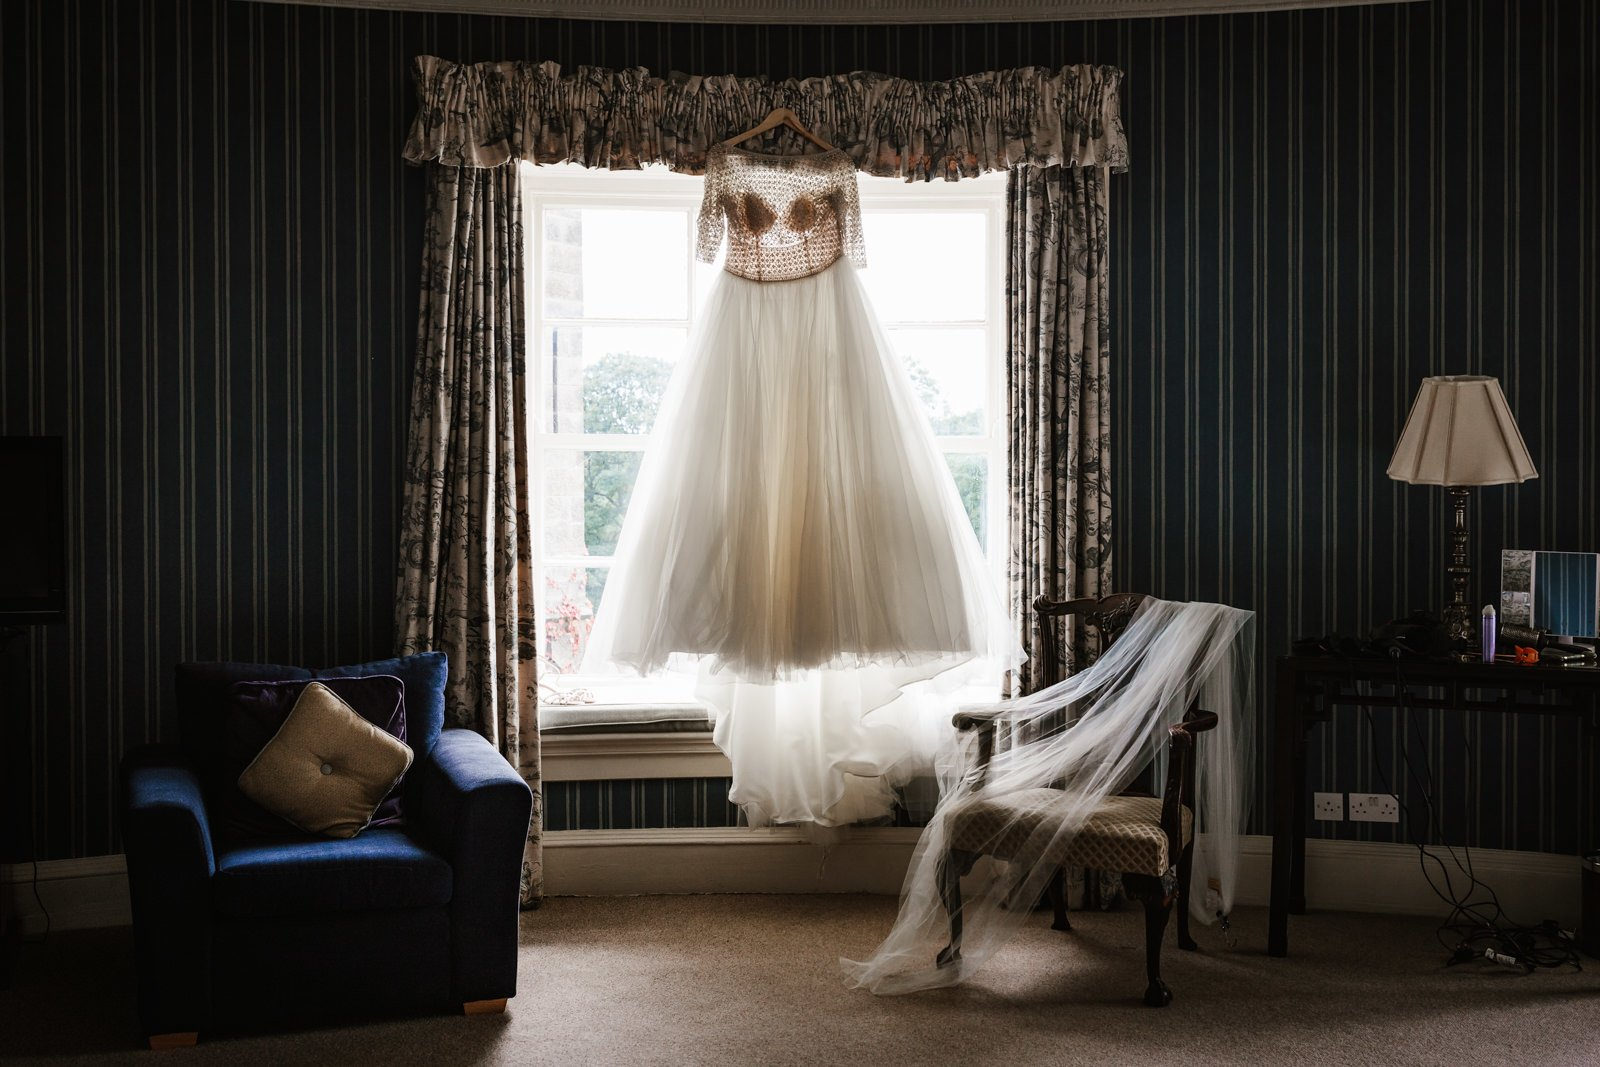 Wedding dress in the window atr Swinton Castle